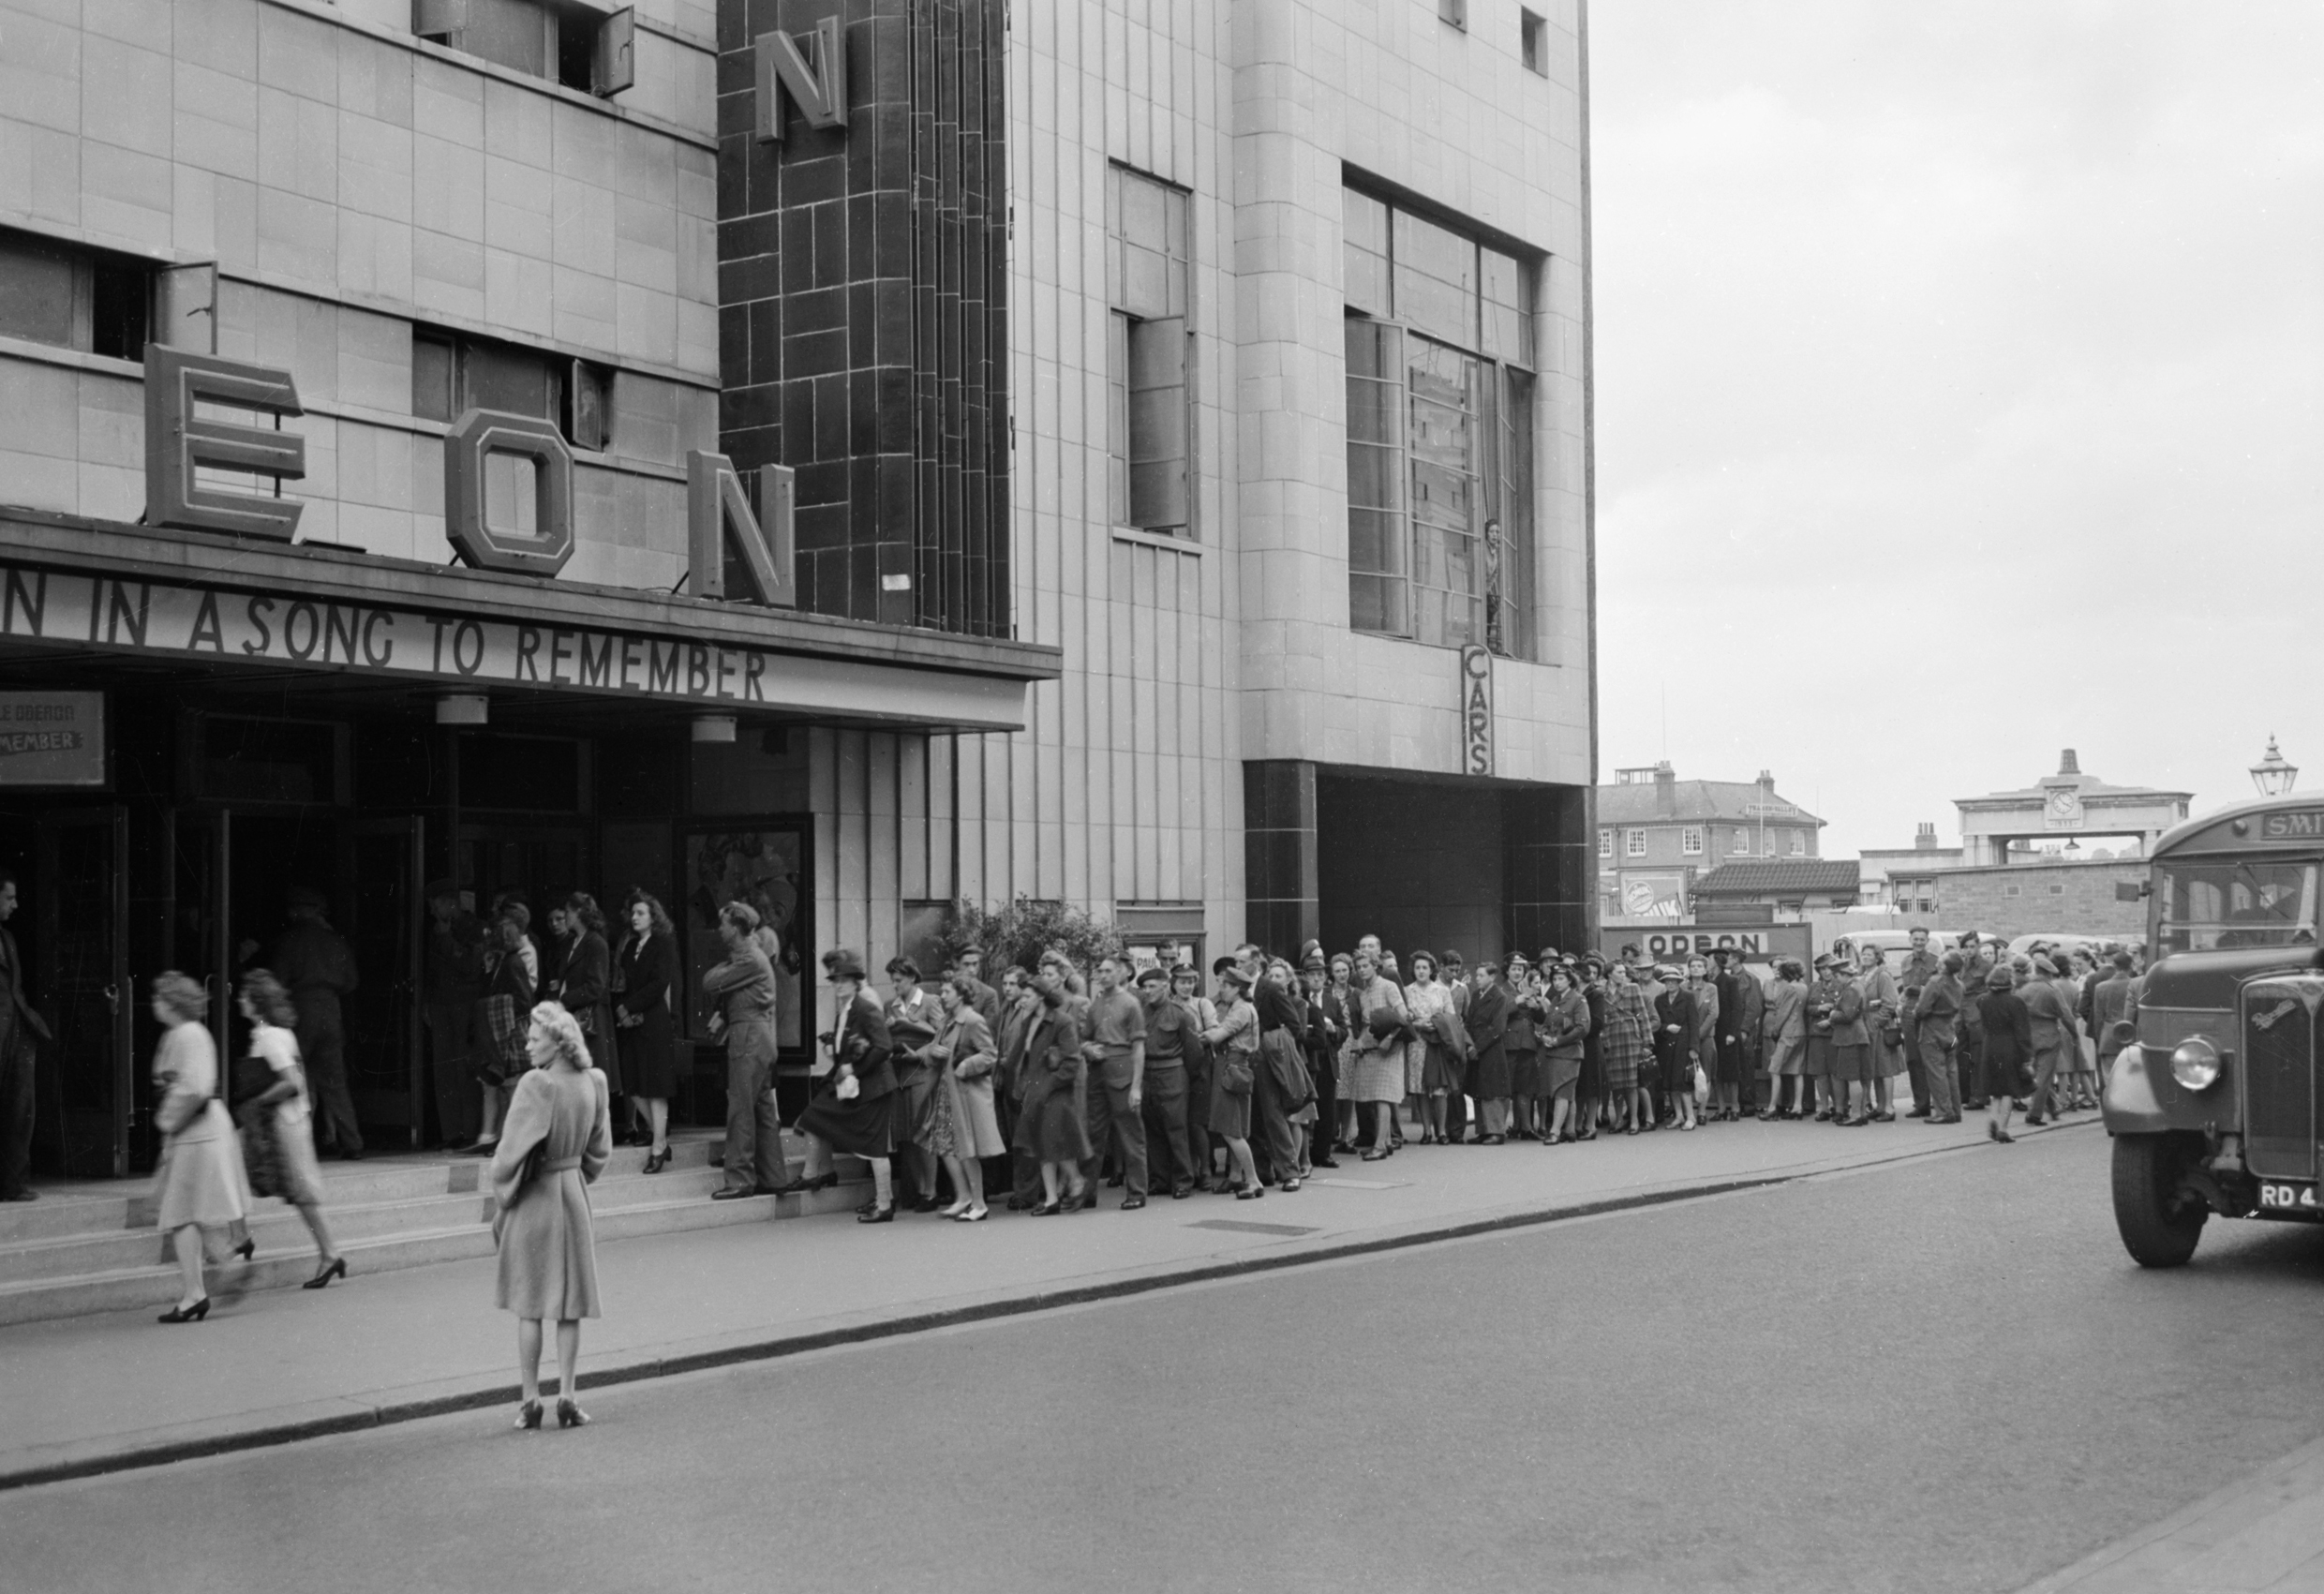 A long queue stretches out from the entrance of the Odeon Cinema in wartime Reading, as people buy tickets, 1945.  © IWM (D 25326)